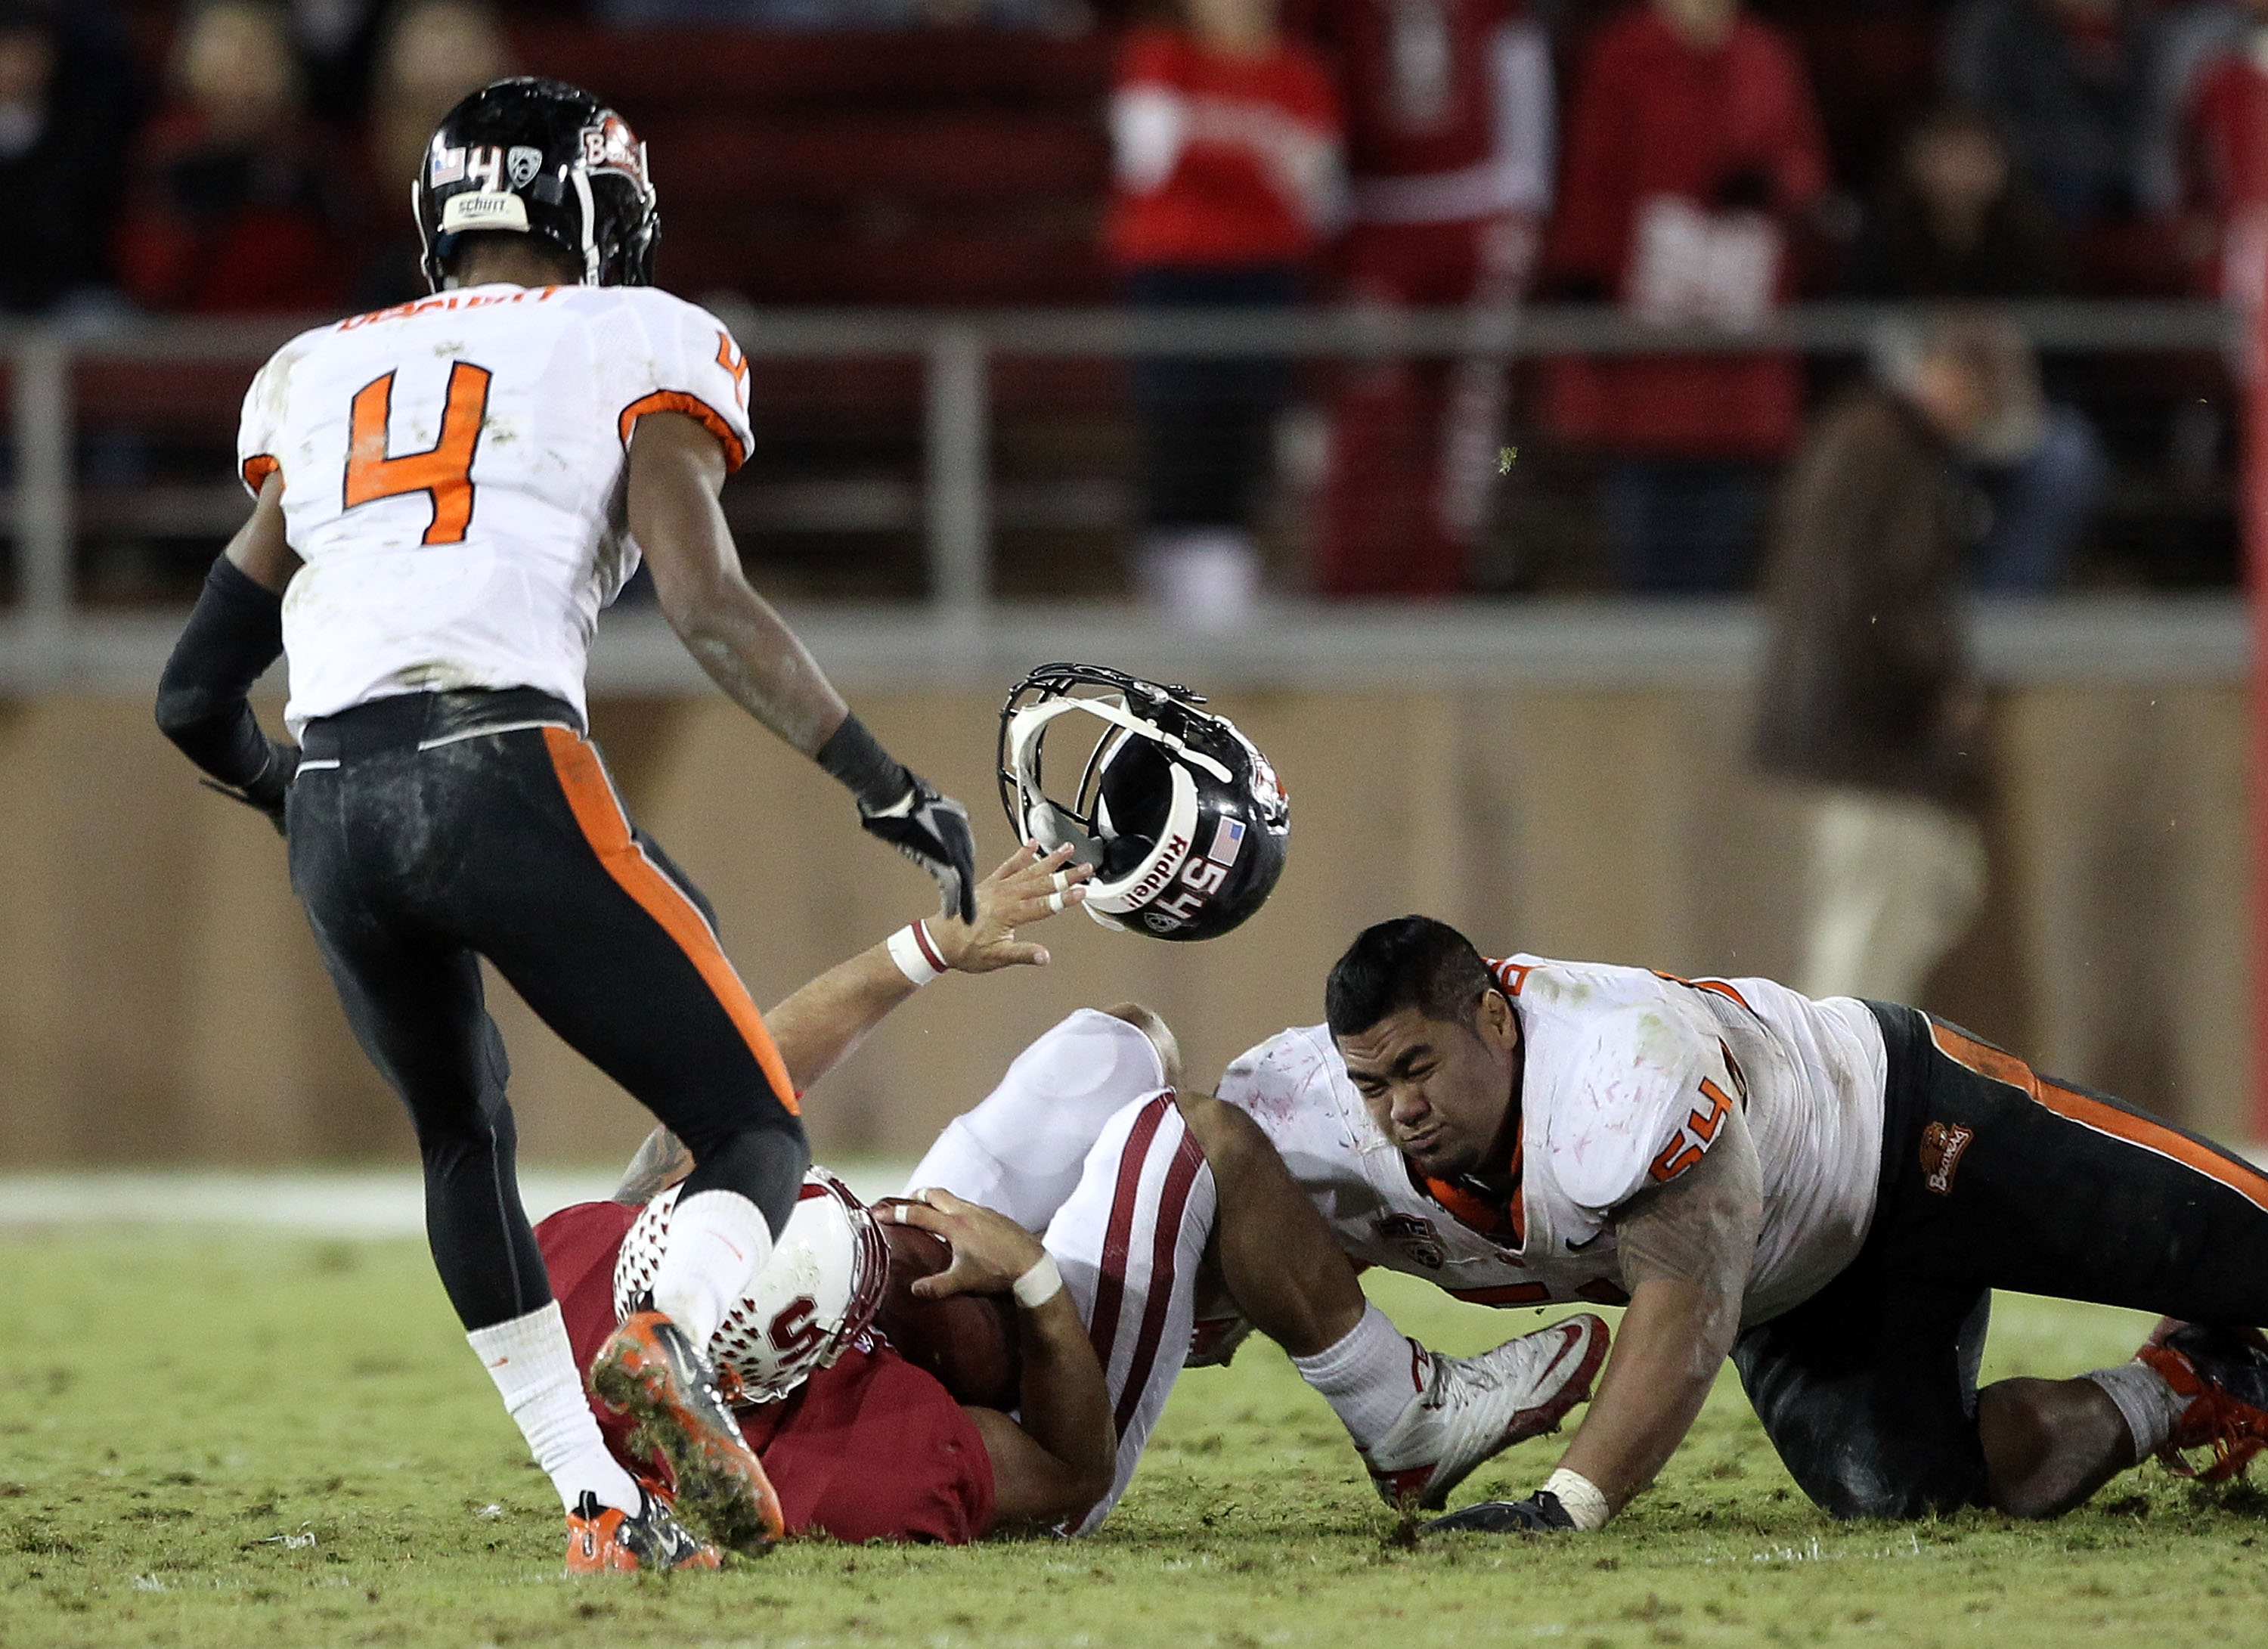 Paea loses his helmet on nearly every play.